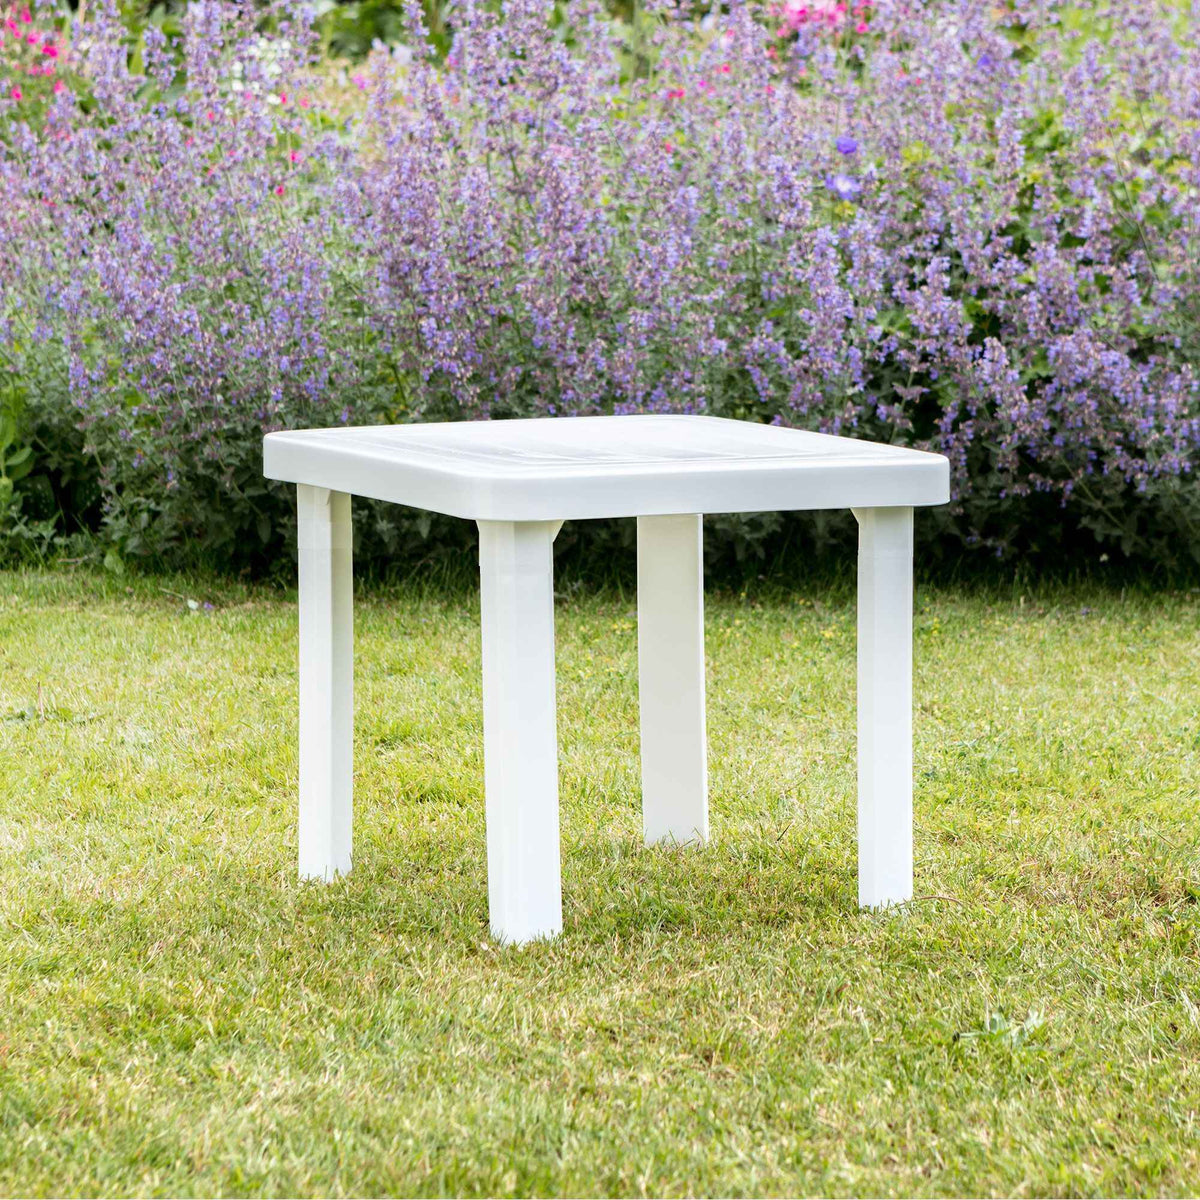 Resol Andorra Sun Lounger Side Table - White